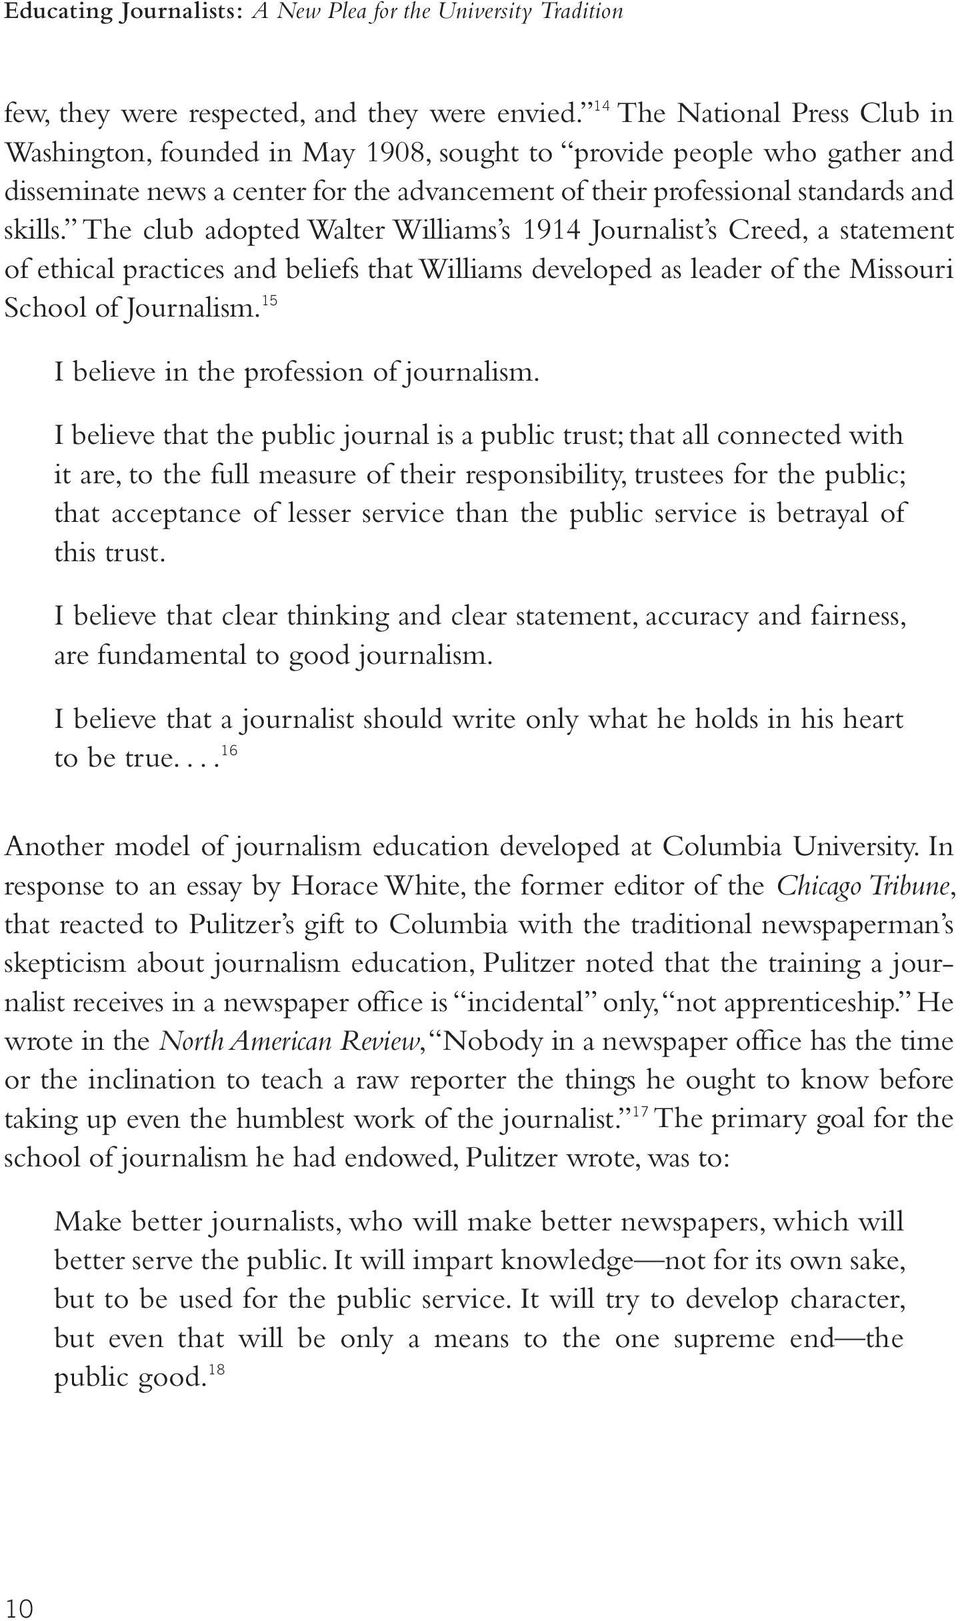 professional journalism essay Disclaimer: this essay has been submitted by a student this is not an example of the work written by our professional essay writers you can view samples of our professional work here any opinions, findings, conclusions or recommendations expressed in this material are those of the authors and do.